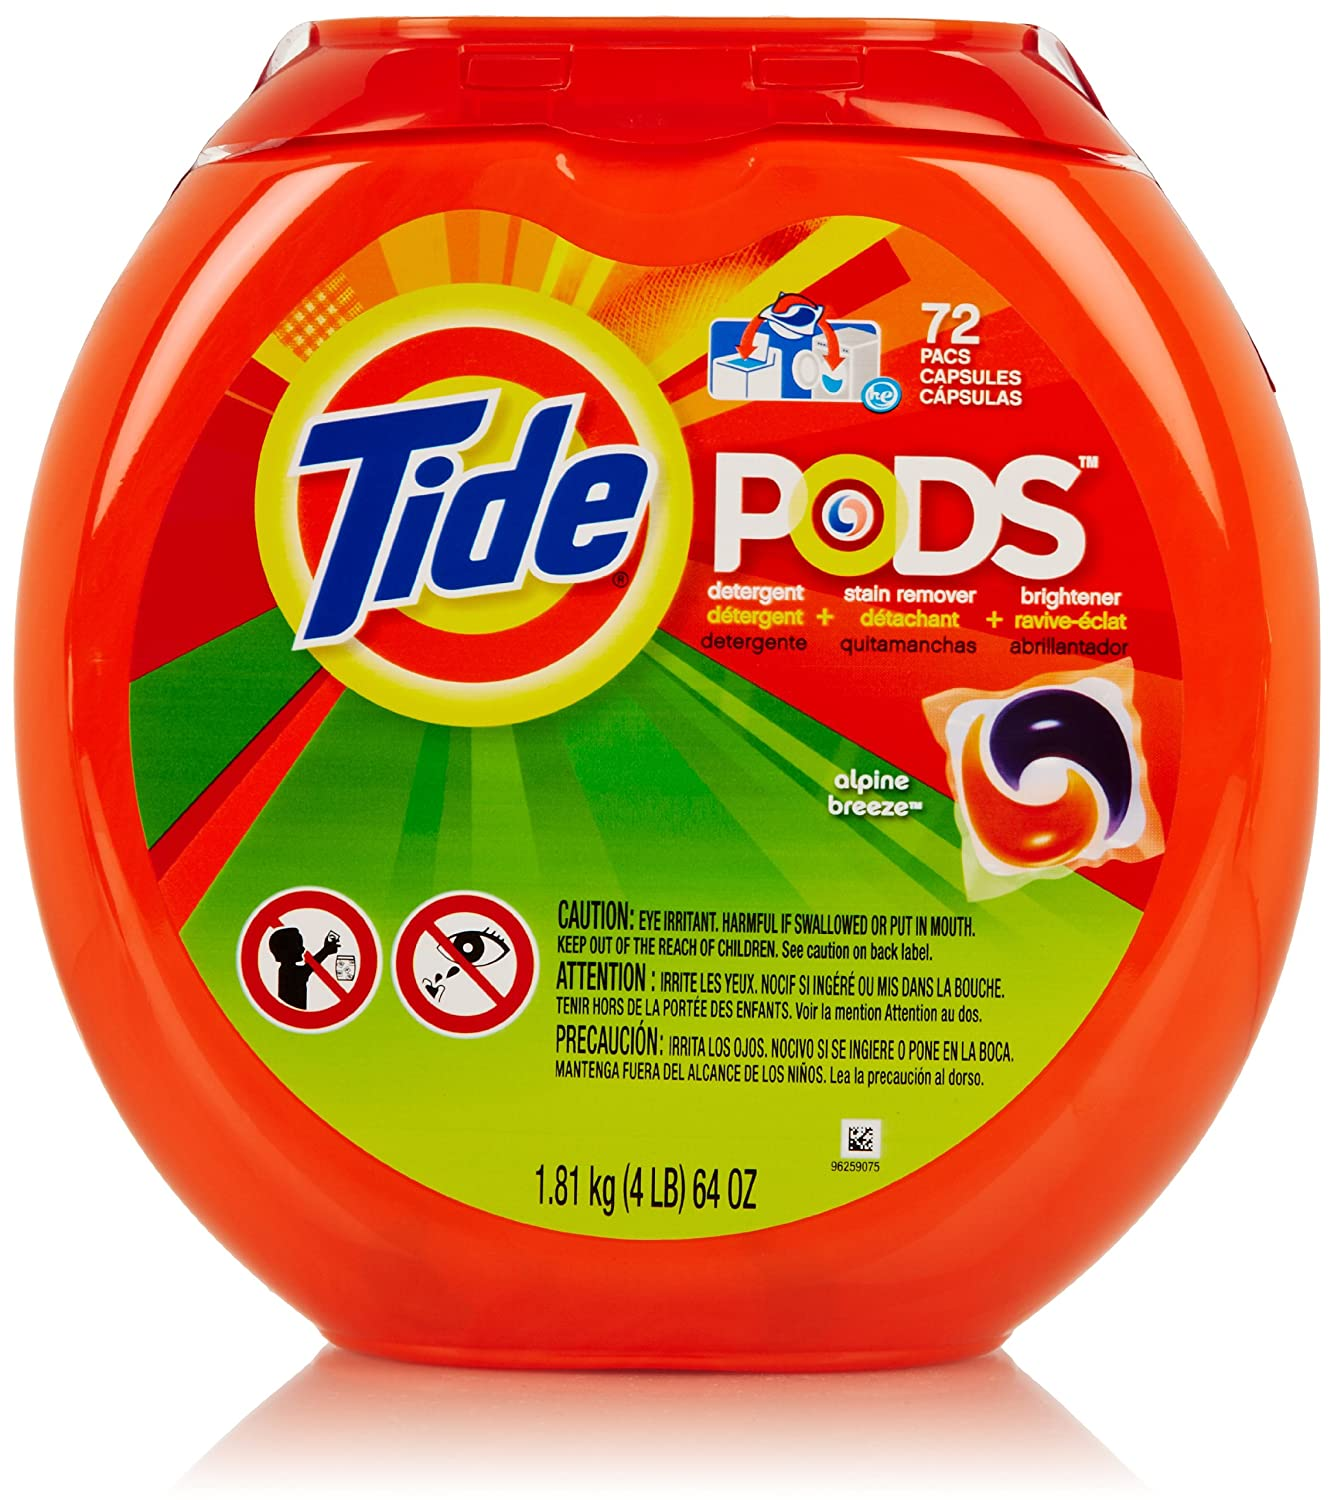 Amazon.com: Tide PODS Laundry Detergent, Alpine Breeze Scent, 72 Count: Health & Personal Care